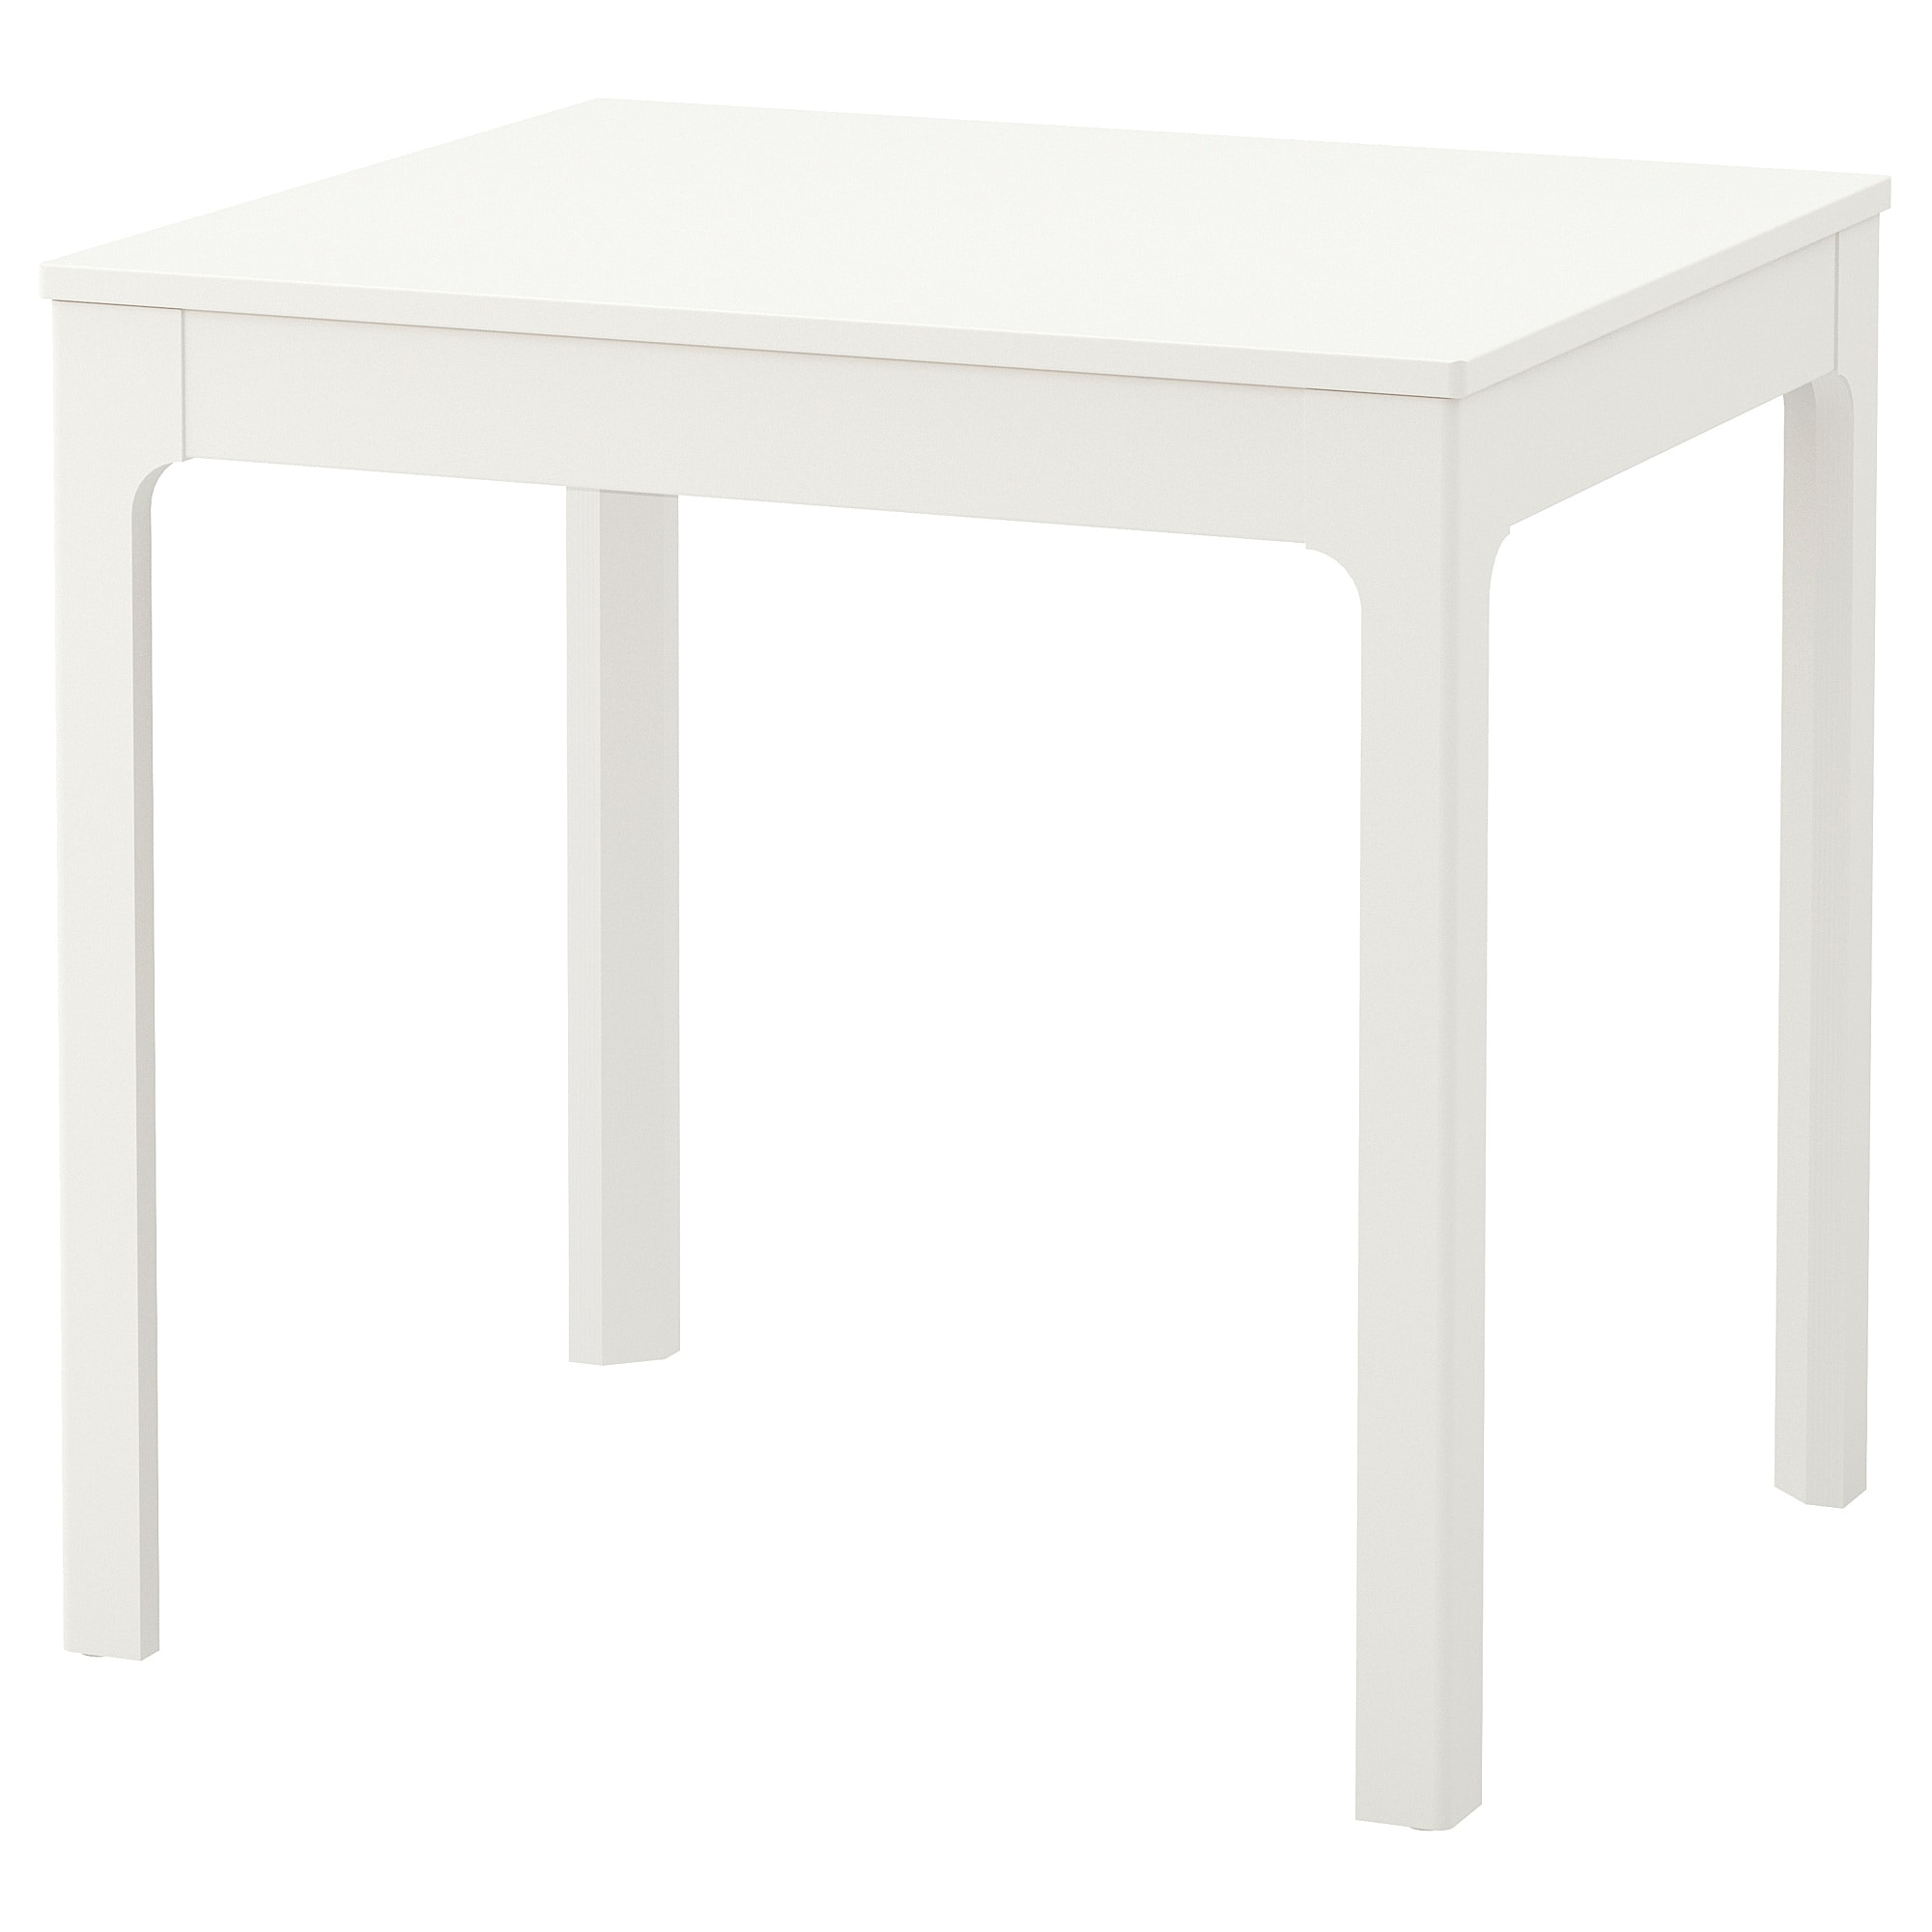 Table Carrée Avec Rallonge Ikea Table Extensible Ekedalen Blanc